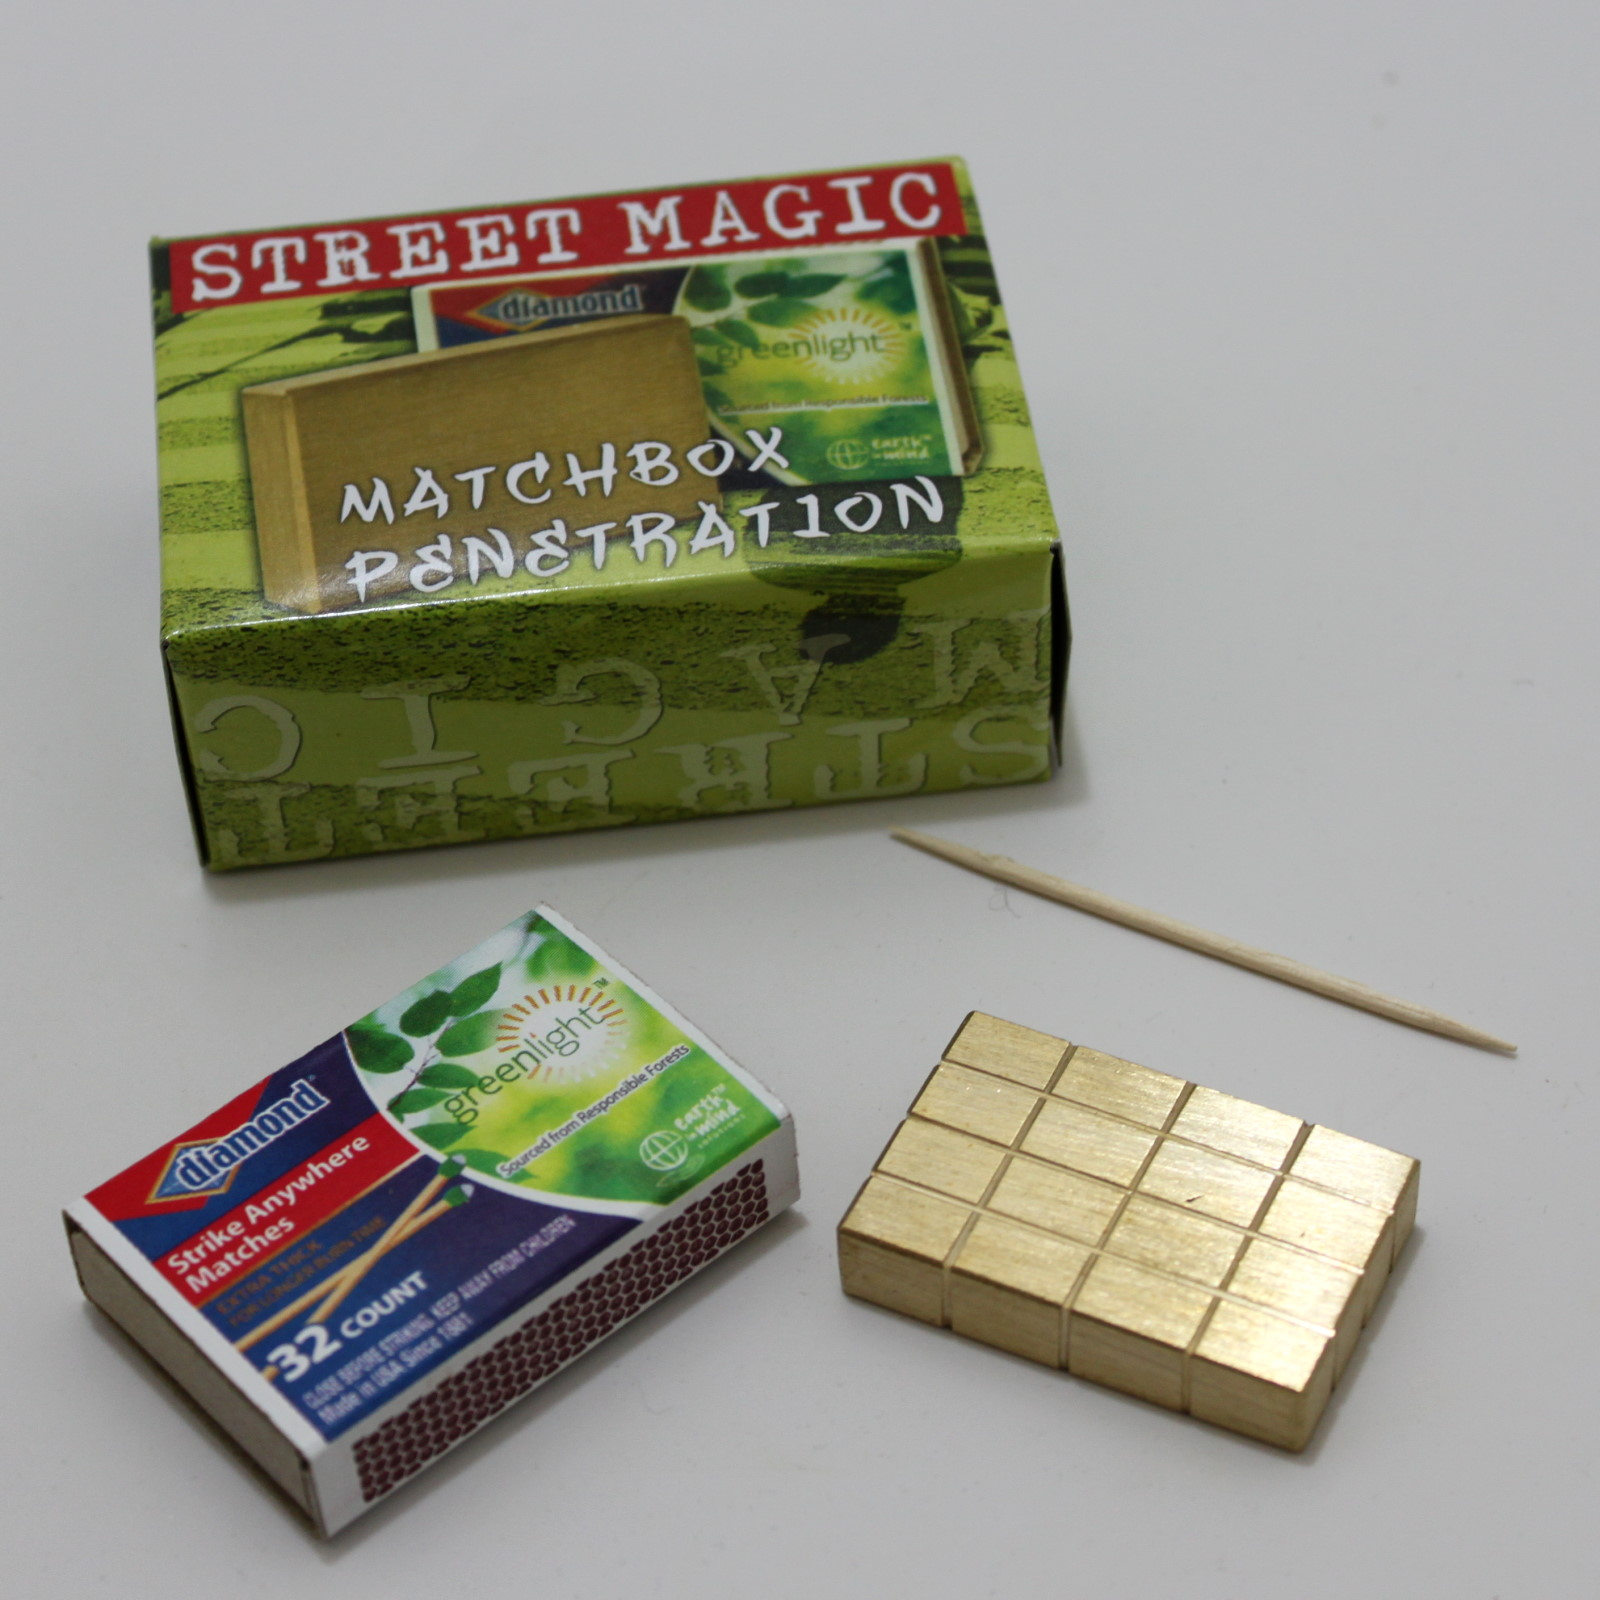 Matchbox Penetration by Mak Magic